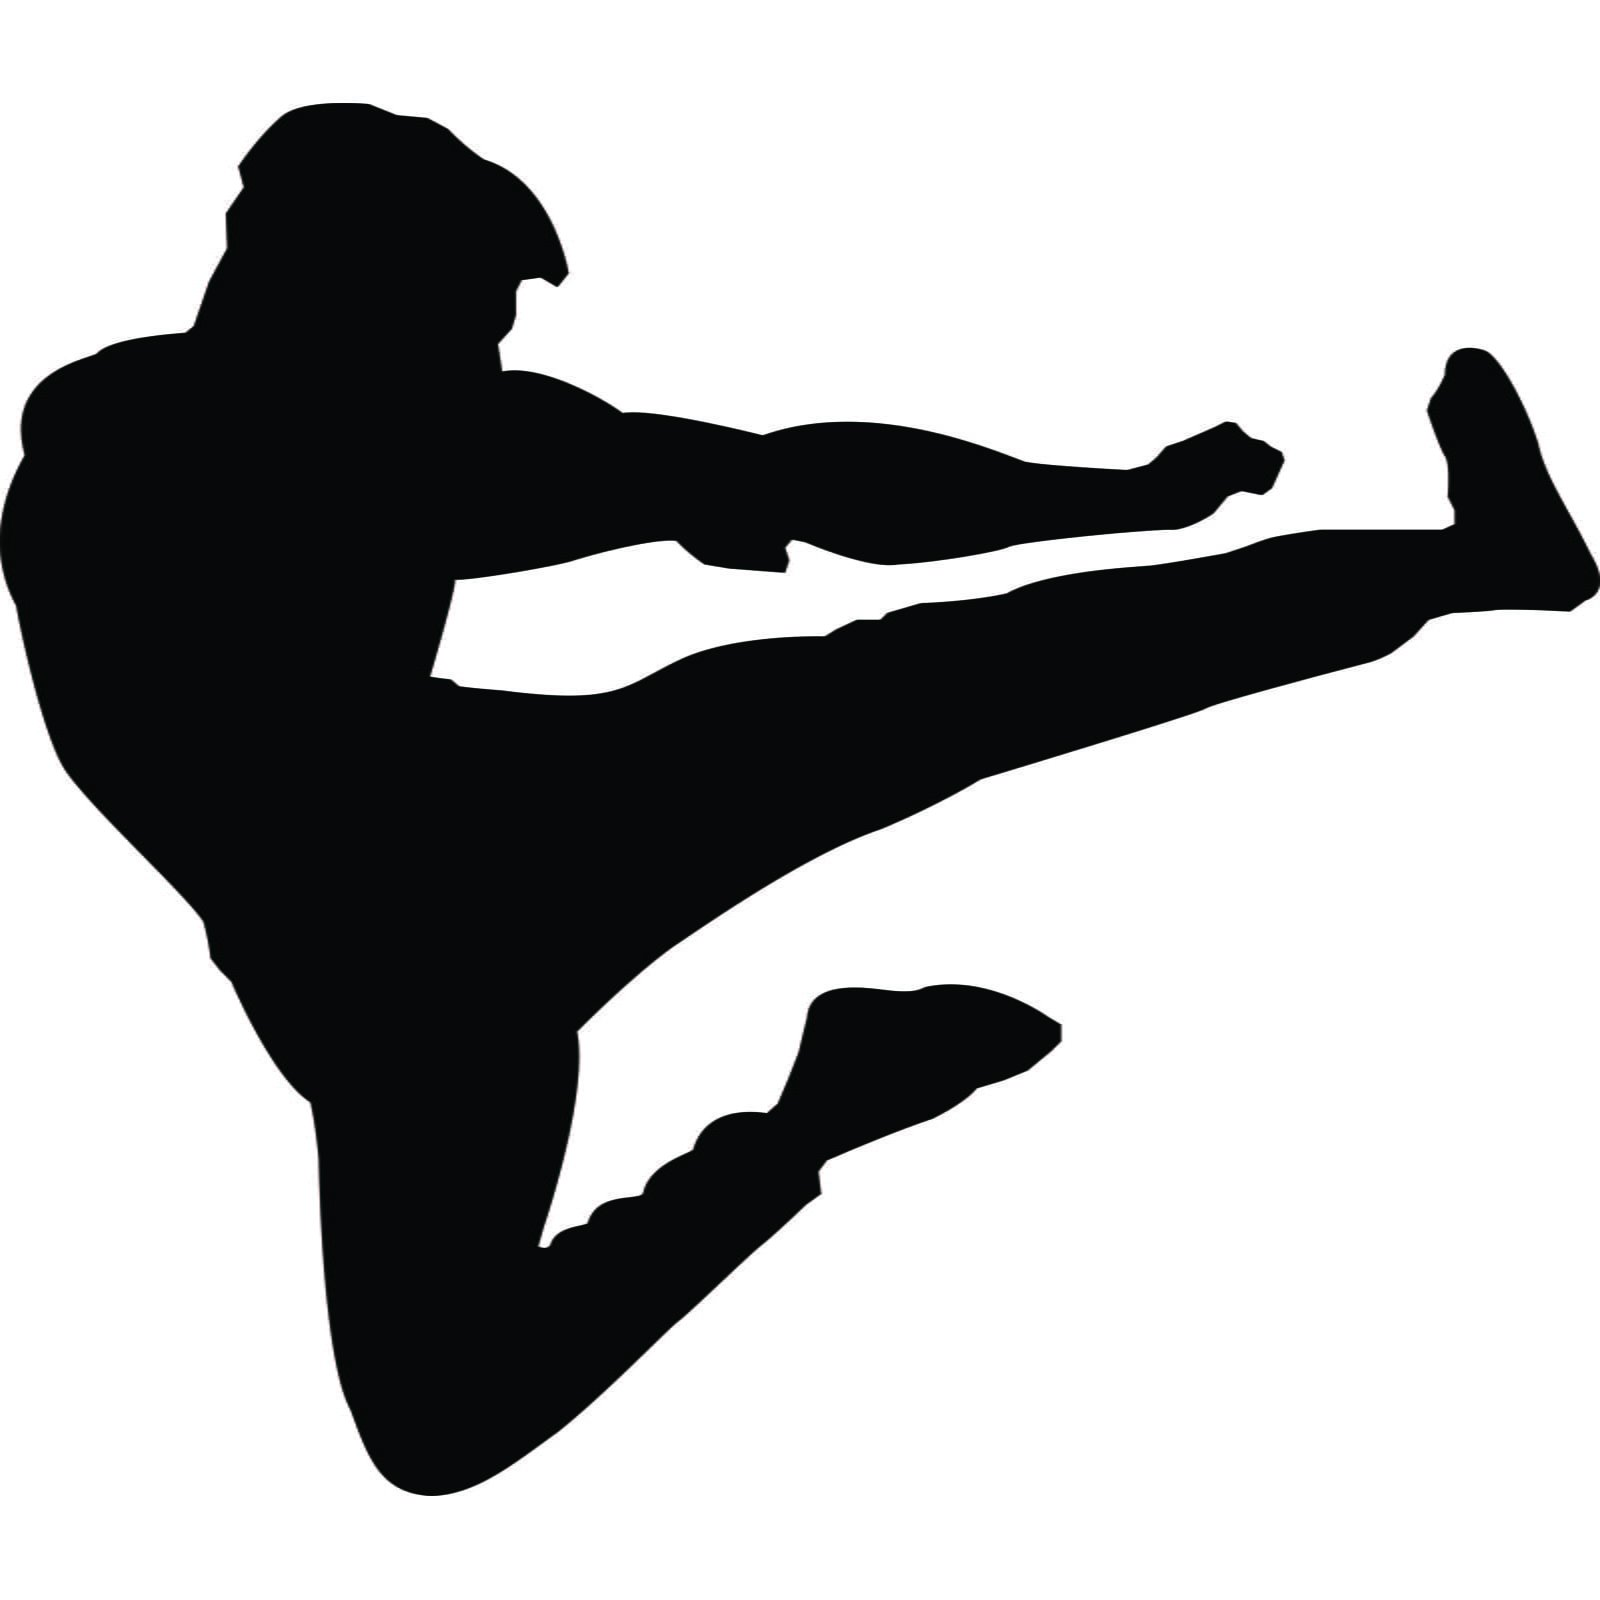 Gallery For > Karate Flying Kick Silhouette